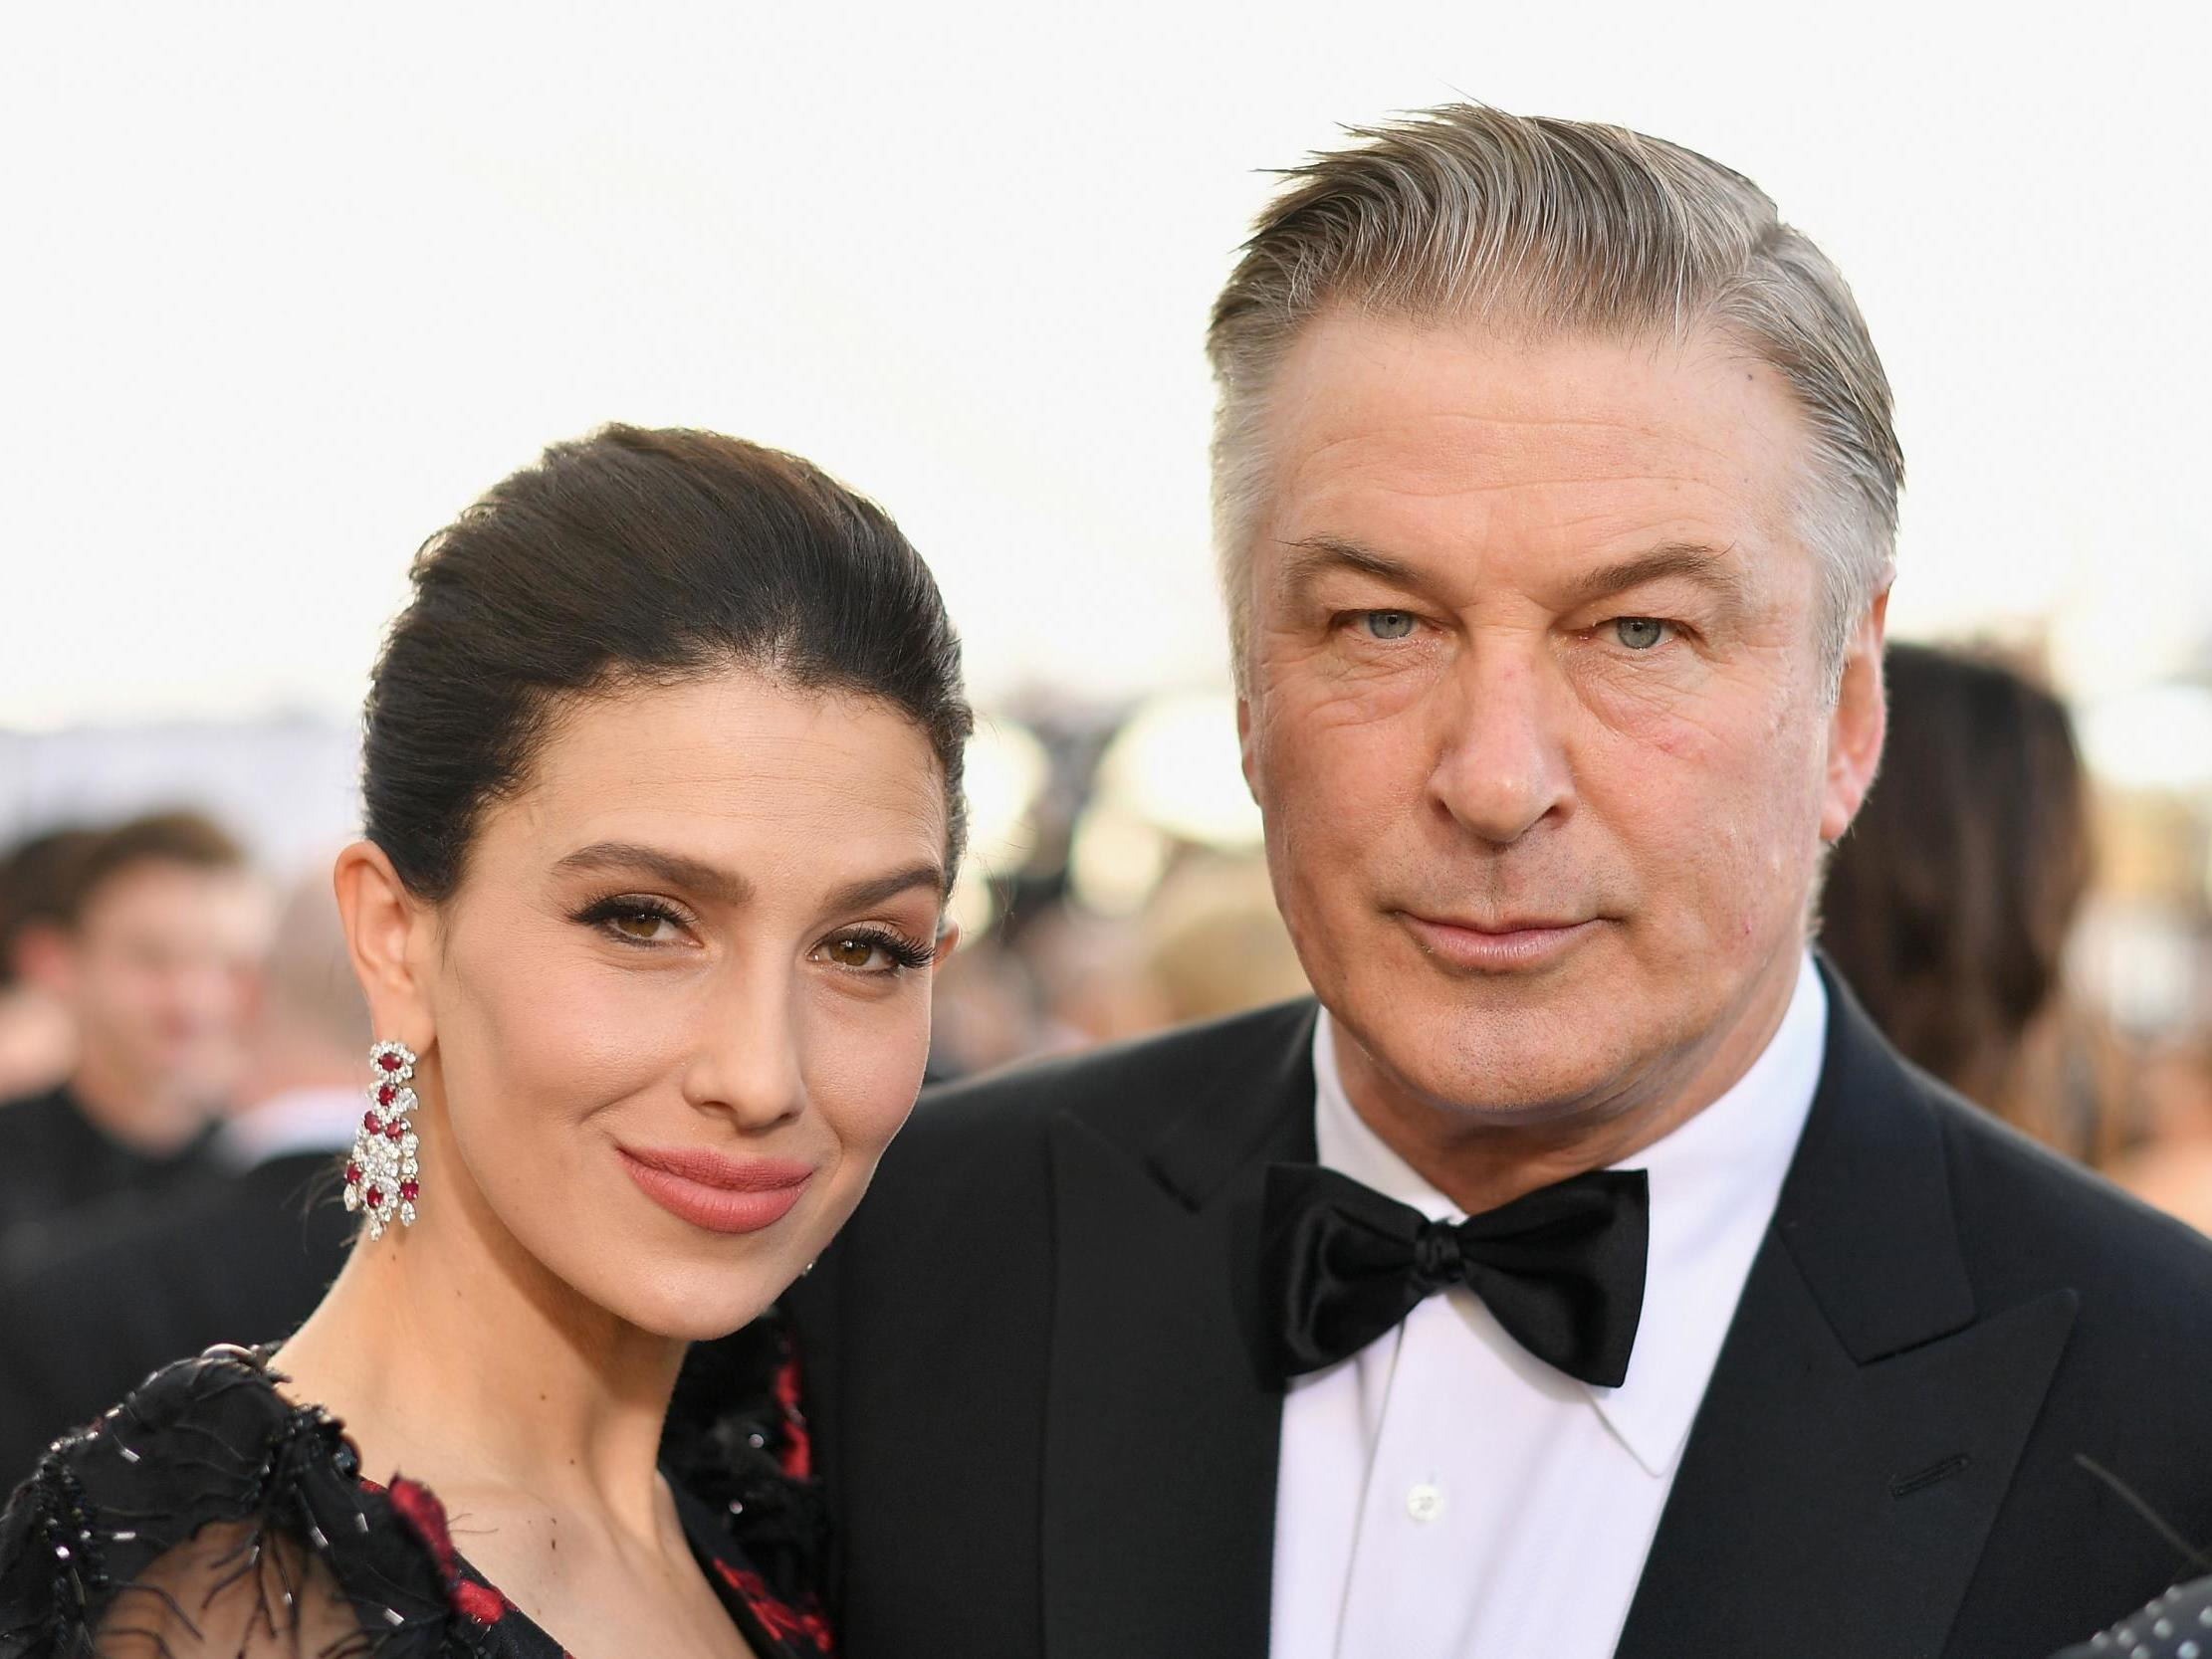 Hilaria Baldwin reveals she has suffered a second miscarriage: 'I'm really devastated...I was not expecting this'